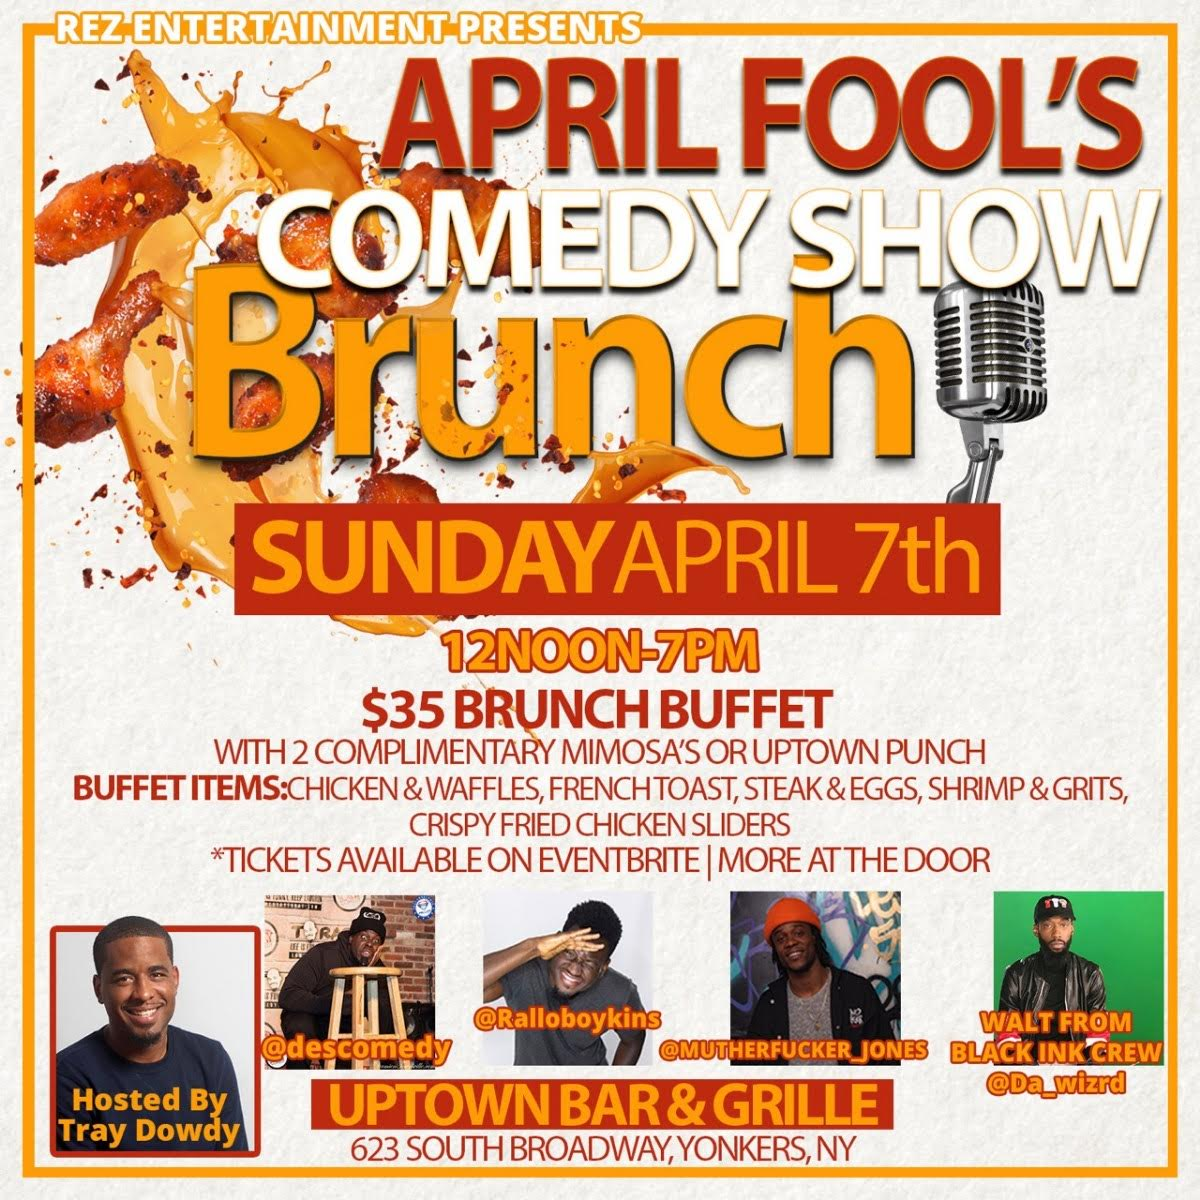 April's Fools Brunch Comedy Show Sunday, April 7th 2:oopm-4:oopm Uptown Bar & Grille | 623 South Broadway | Yonkers, NY 10705   Tickets